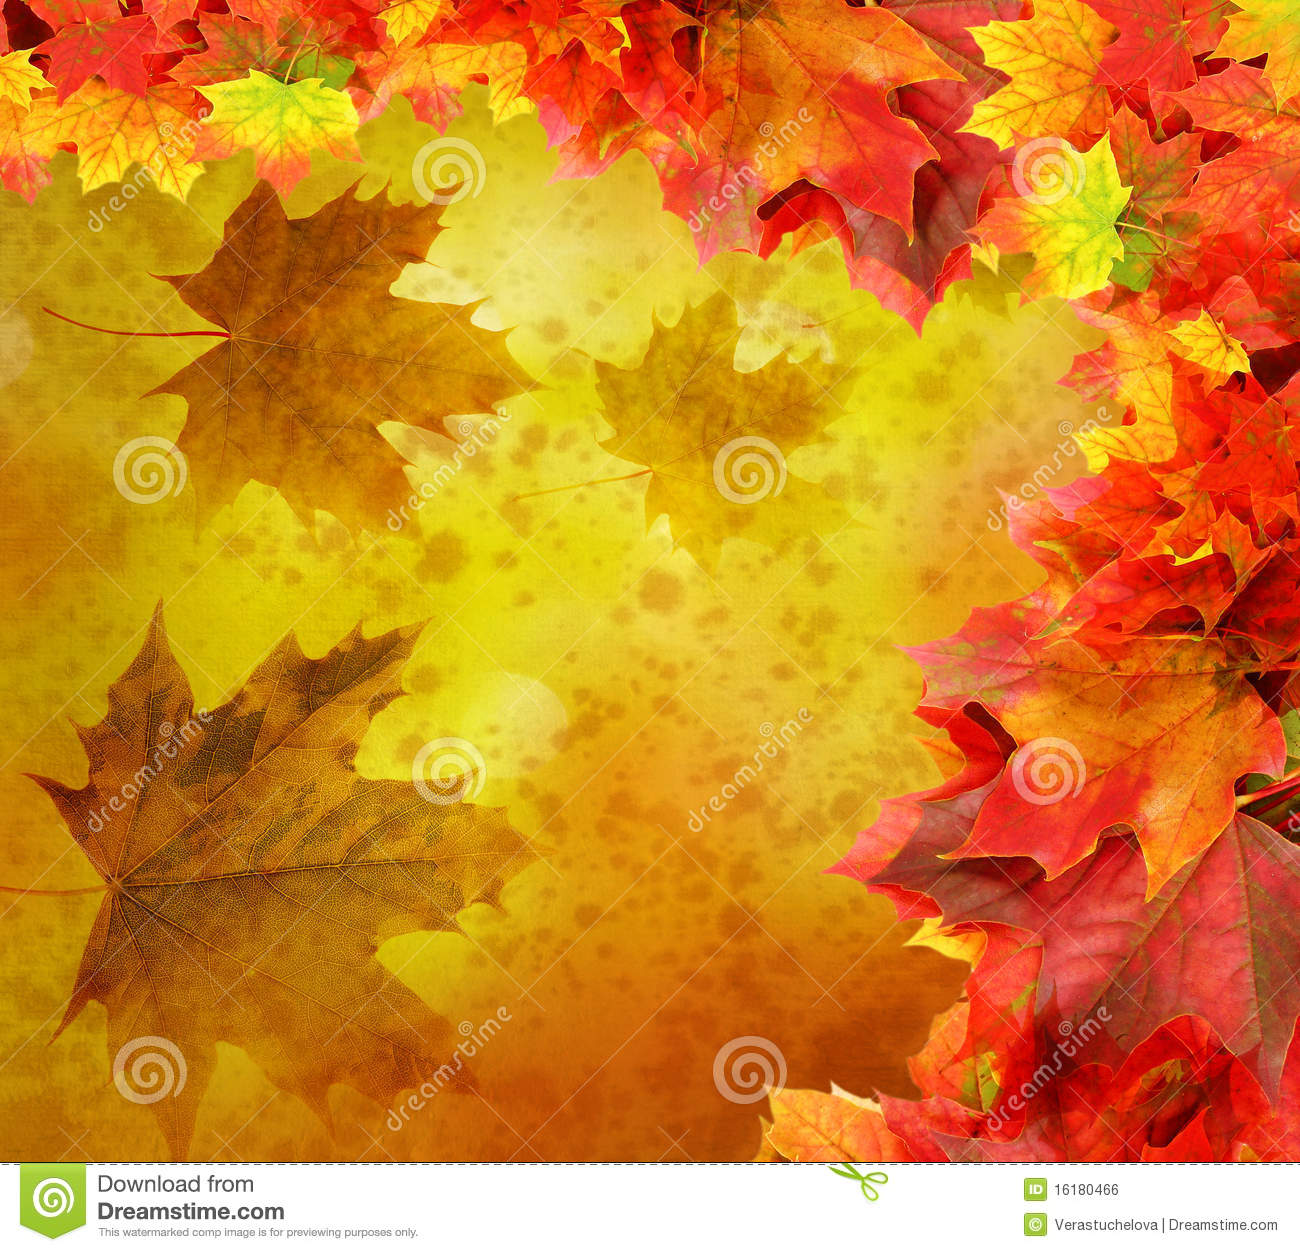 vintage fall backgrounds with - photo #12